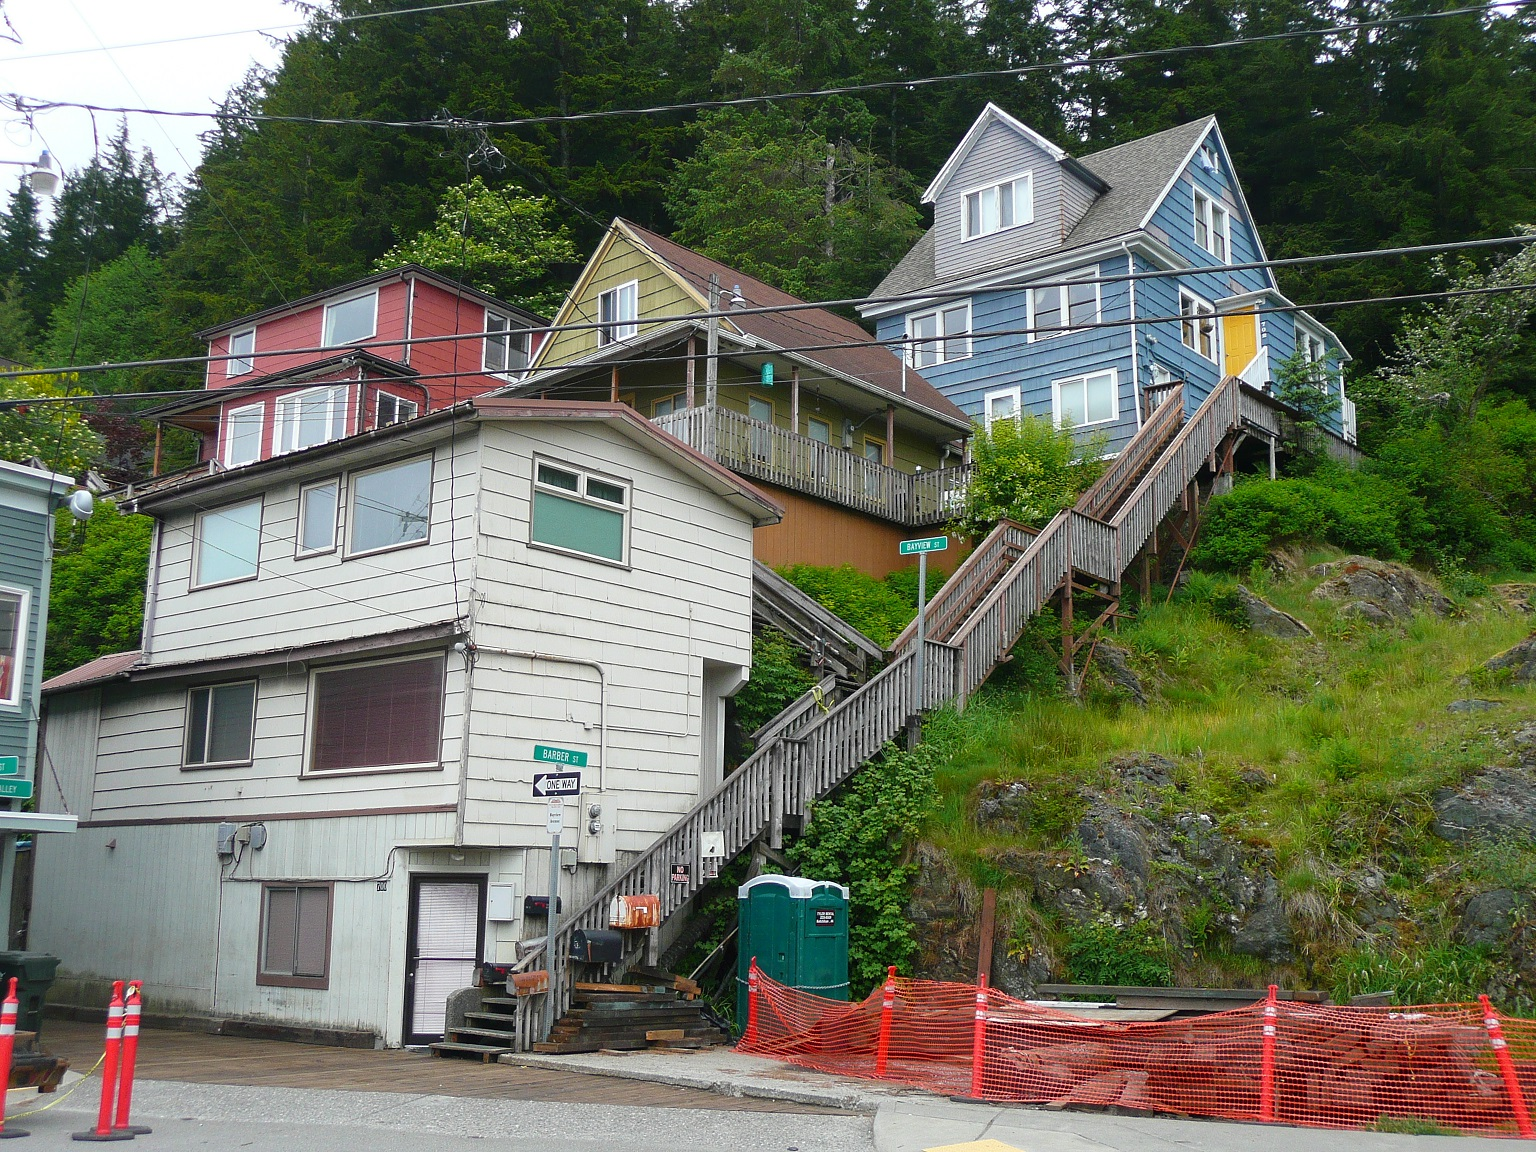 Ketchikan town, stairways are streets